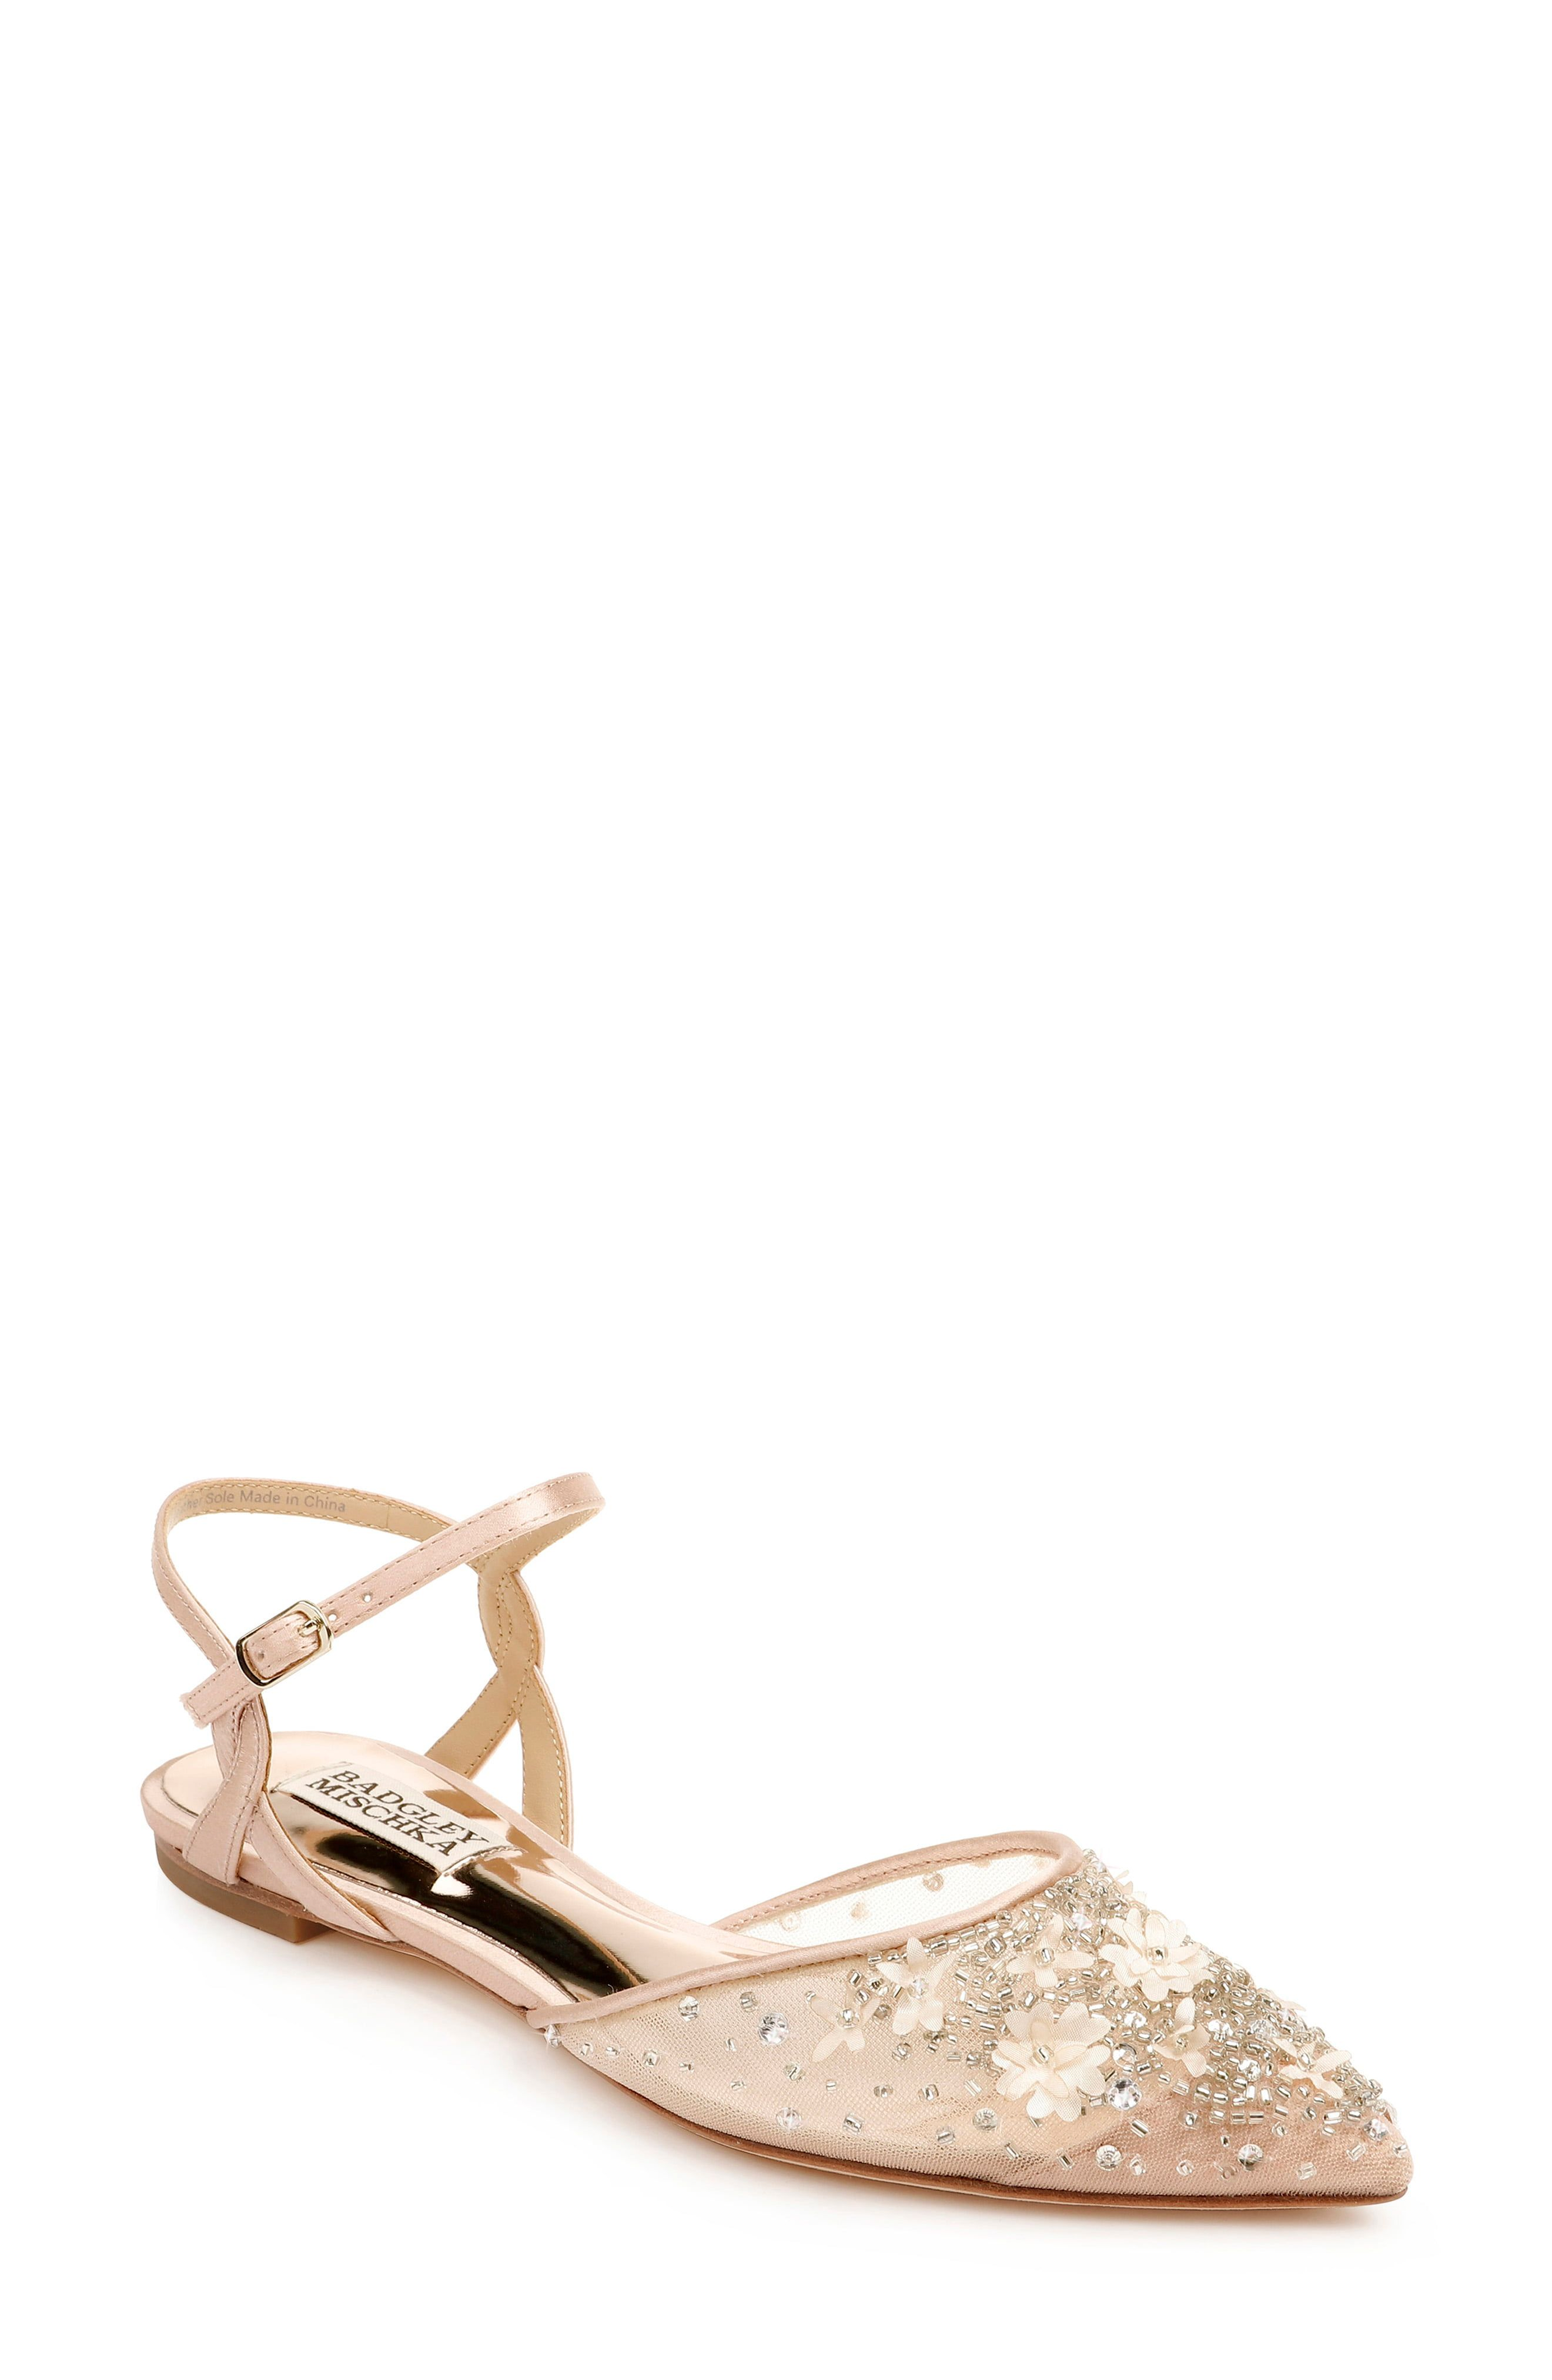 Tiny beads and flower embellishments bring sparkle and shine to the pointy toe of a glamorous ankle-strap flat. Style Name:Badgley Mischka Carissa Embroidered Pointed Toe Flat (Women). Style Number: 5948997_1. Available in stores.